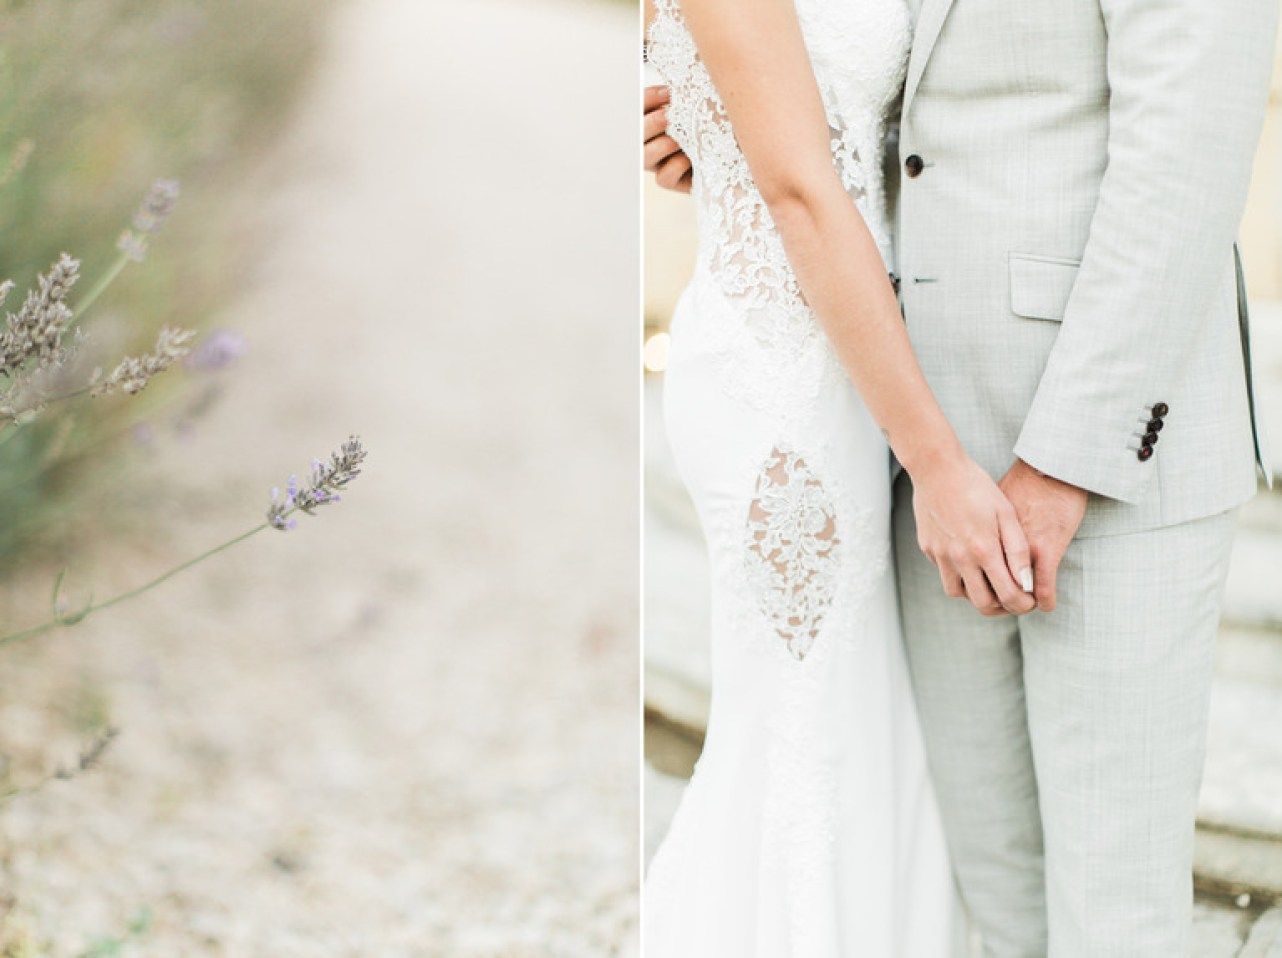 Wedding Details at Chateau la Durantie in France